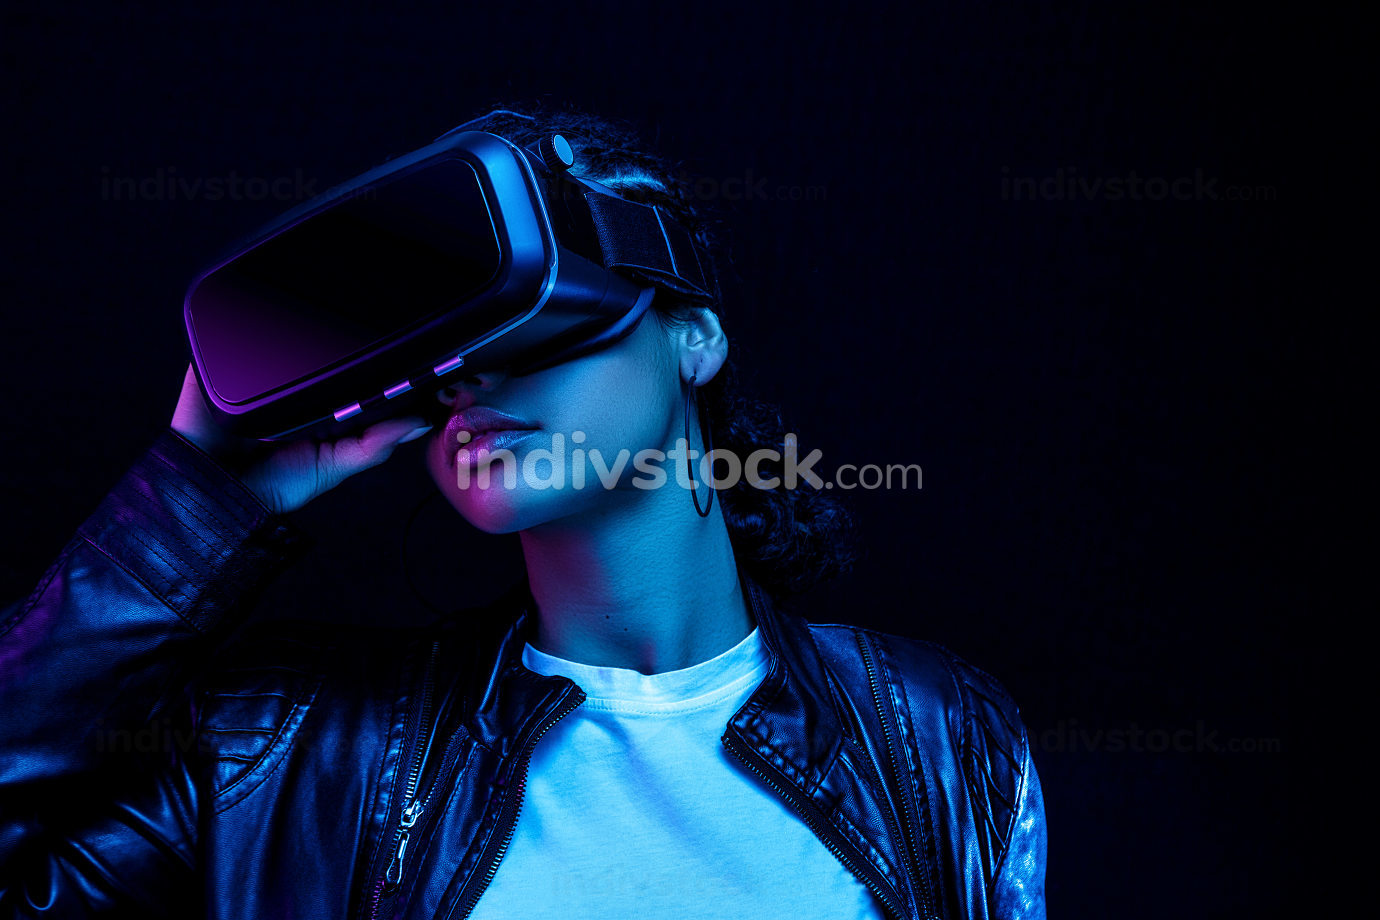 African-American young woman in vr glasses watching 360 degree video with a virtual reality headset isolated on a black background in neon light